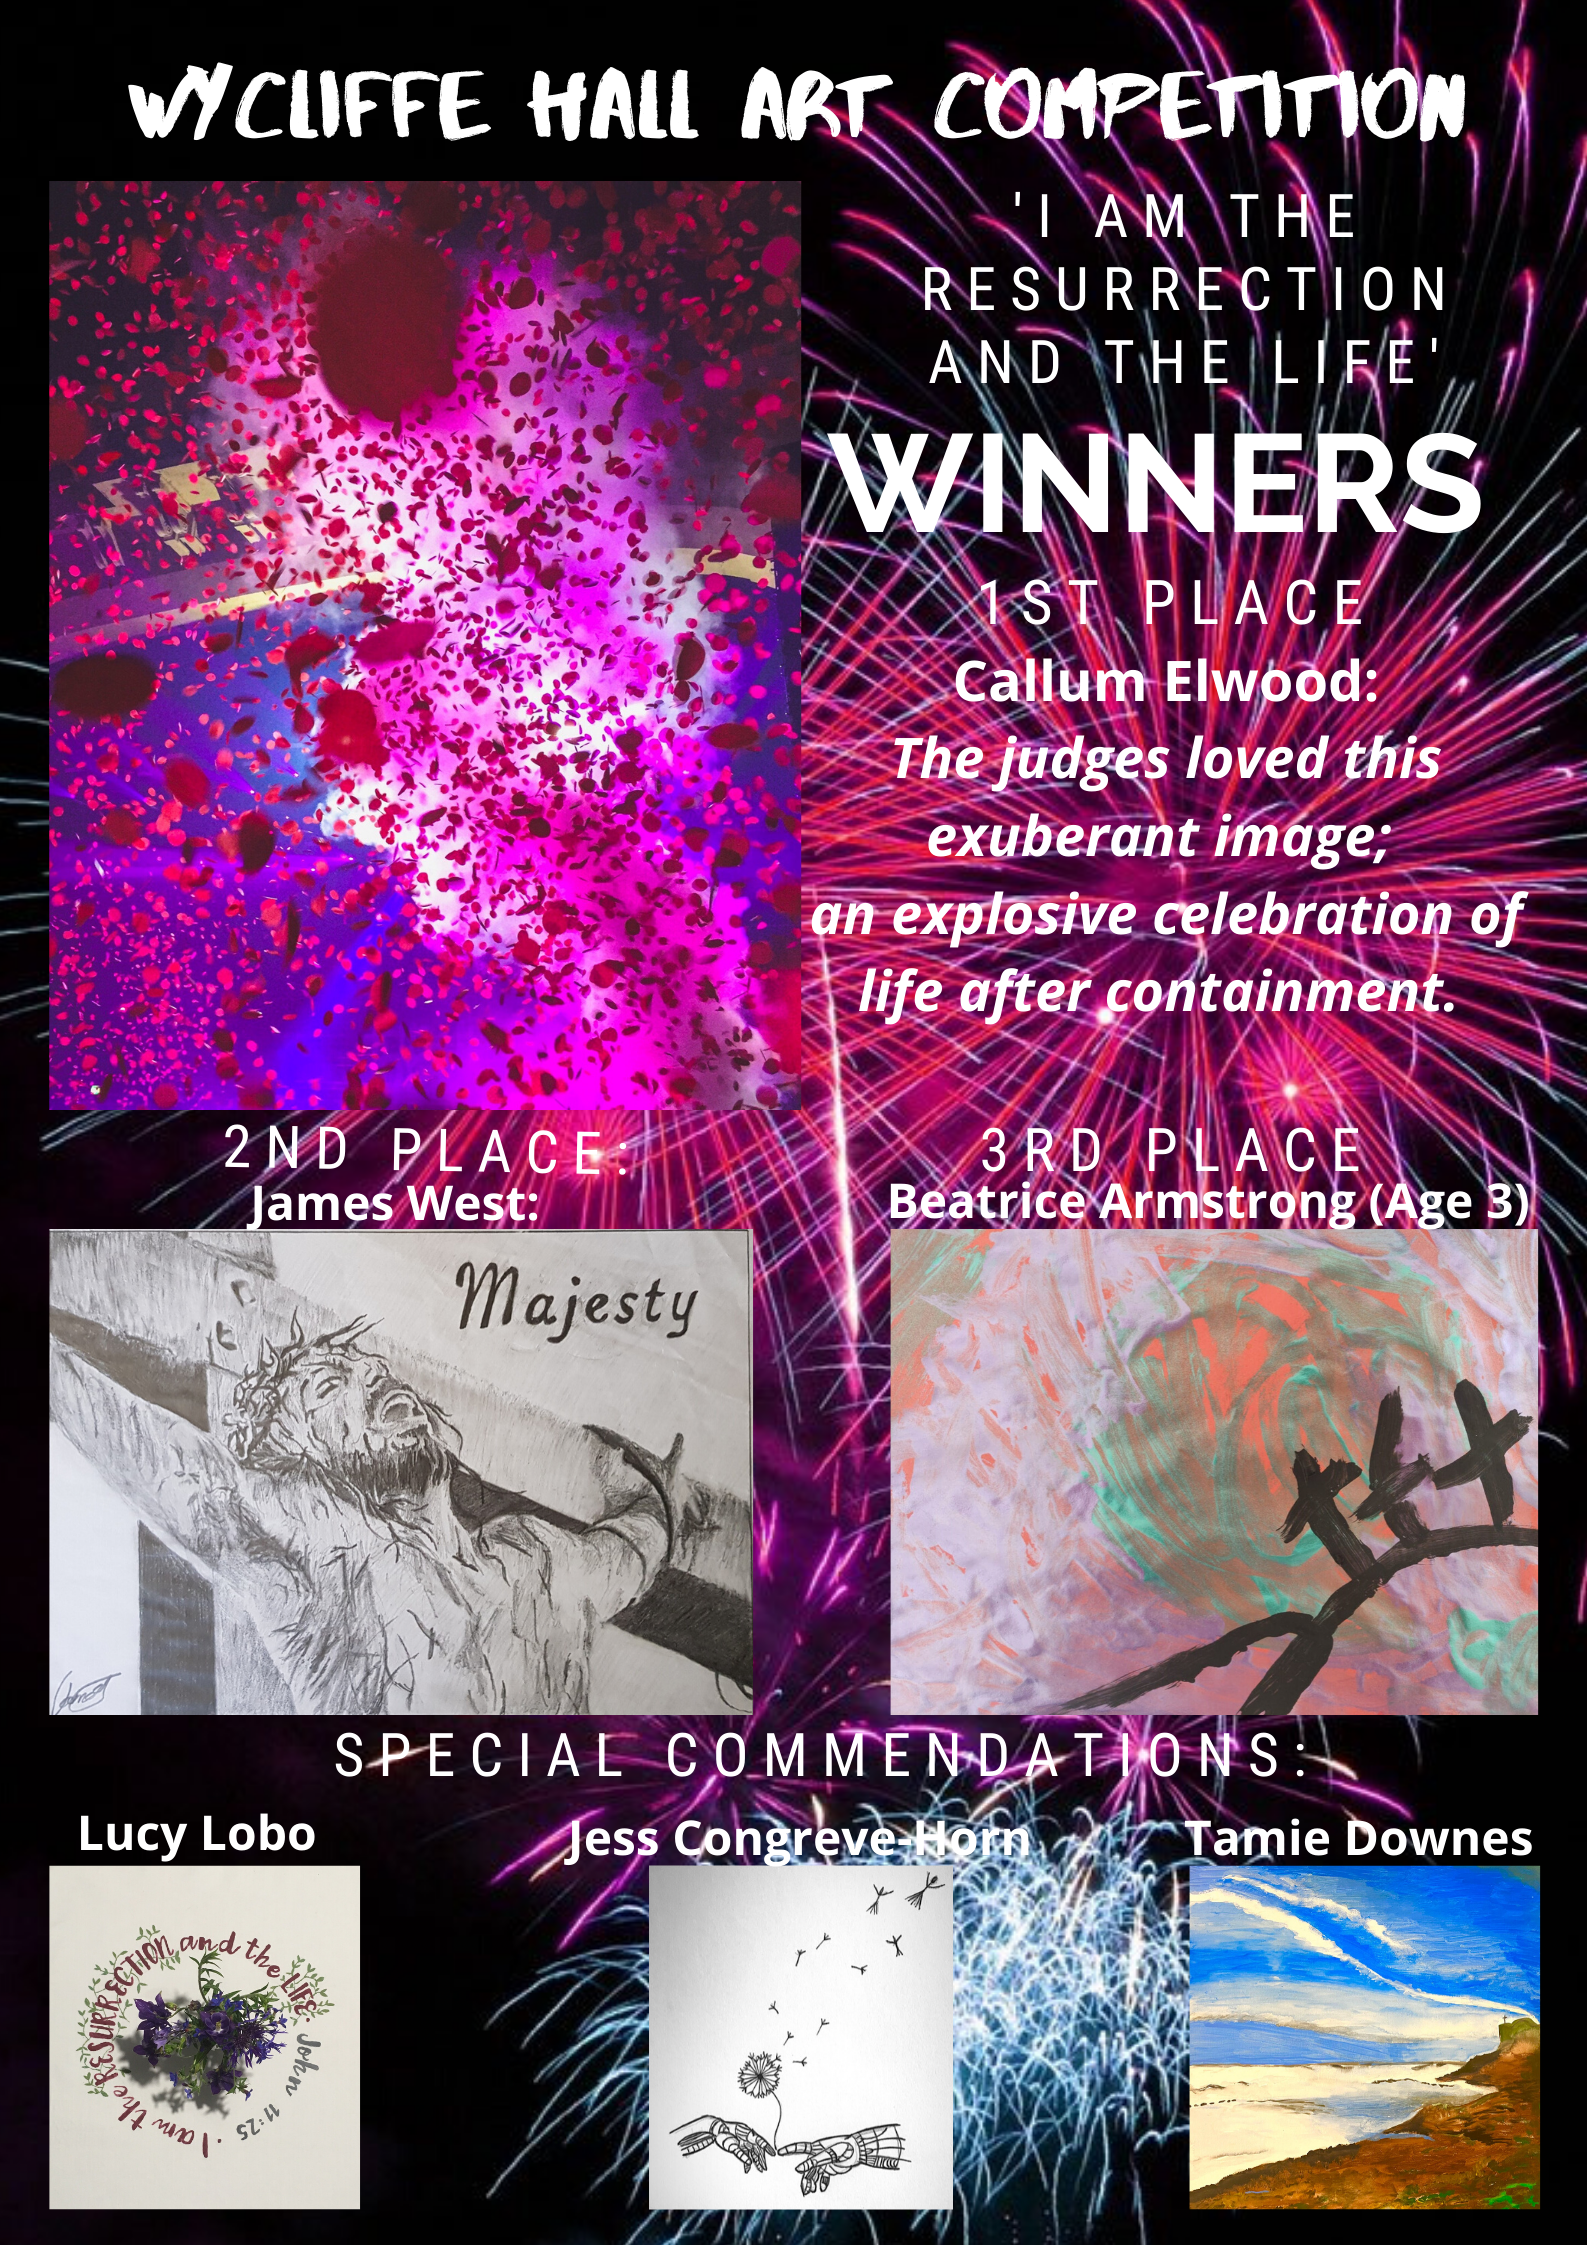 Wycliffe Art Competition winners poster